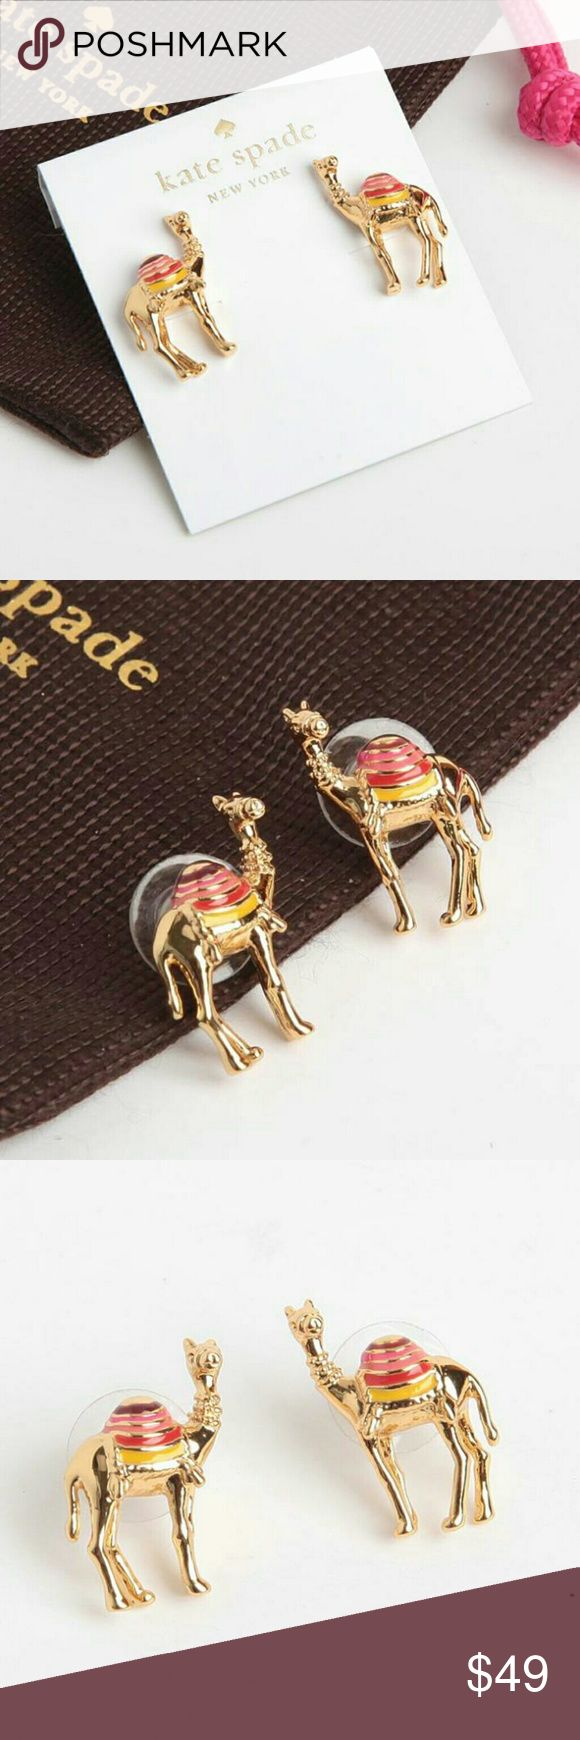 Authentic Kate spade Camel earrings New Kate spade  Jewelry Earrings